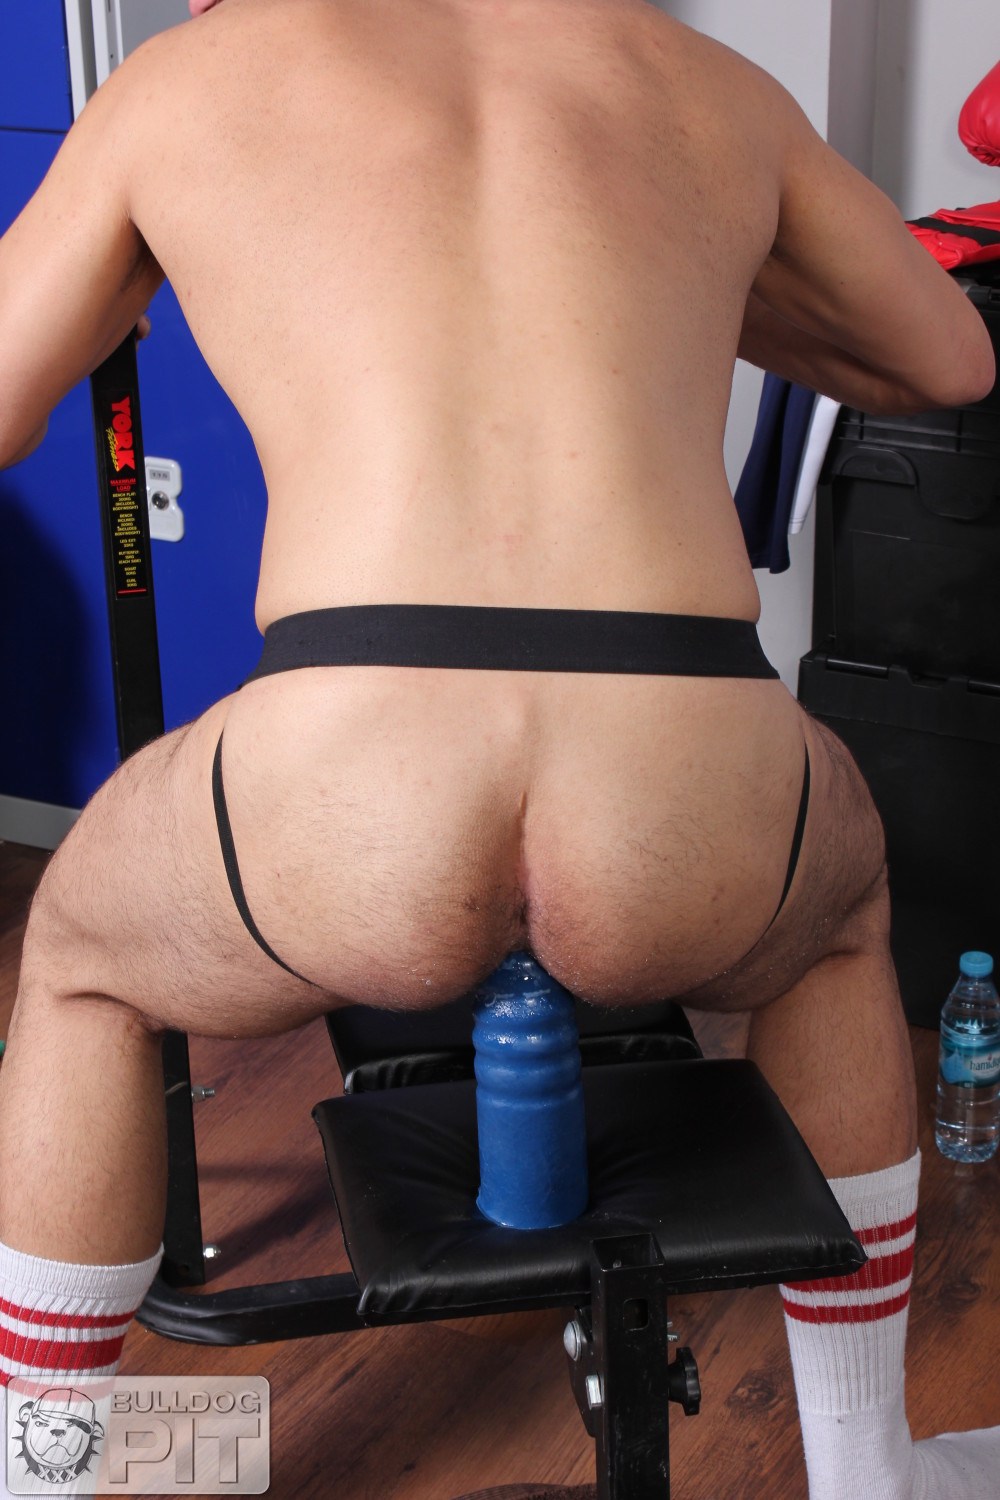 Bulldog-Pit-Jake-Bolton-Athlete-Fucking-Himself-With-A-Dildo-Amateur-Gay-Porn-14 Jake Bolton: Hung Masculine Jock Fucks Himself With Dildos